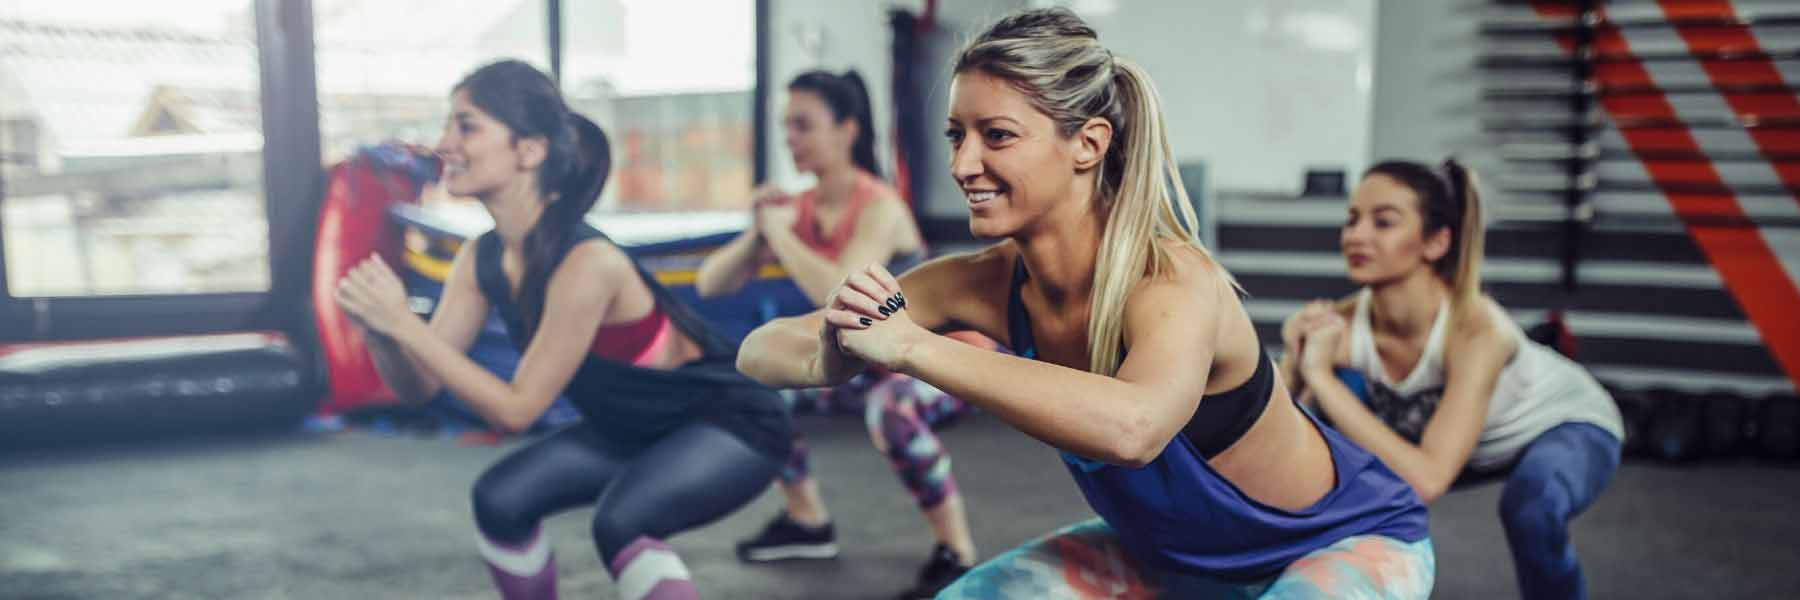 New Year's Resolution Bootcamp at Fit Factory